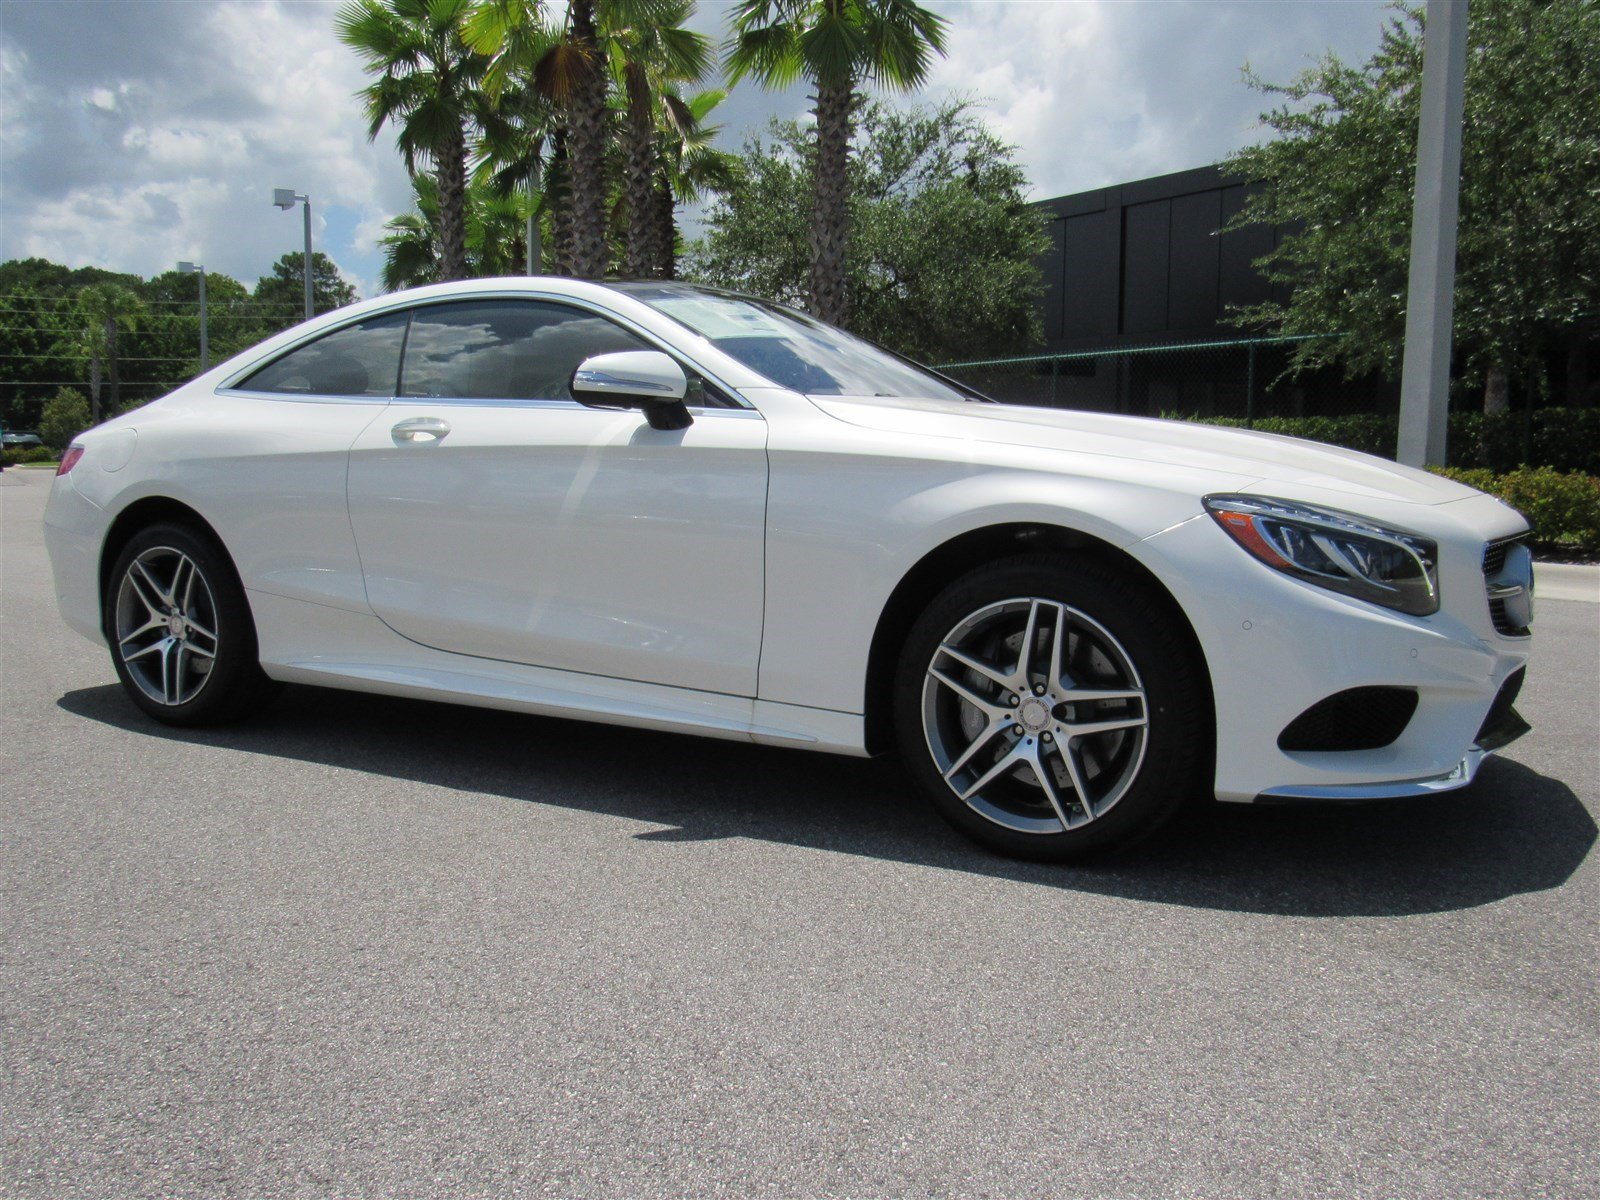 New 2016 mercedes benz s class s550 4matic 2dr car in for Mercedes benz daytona beach